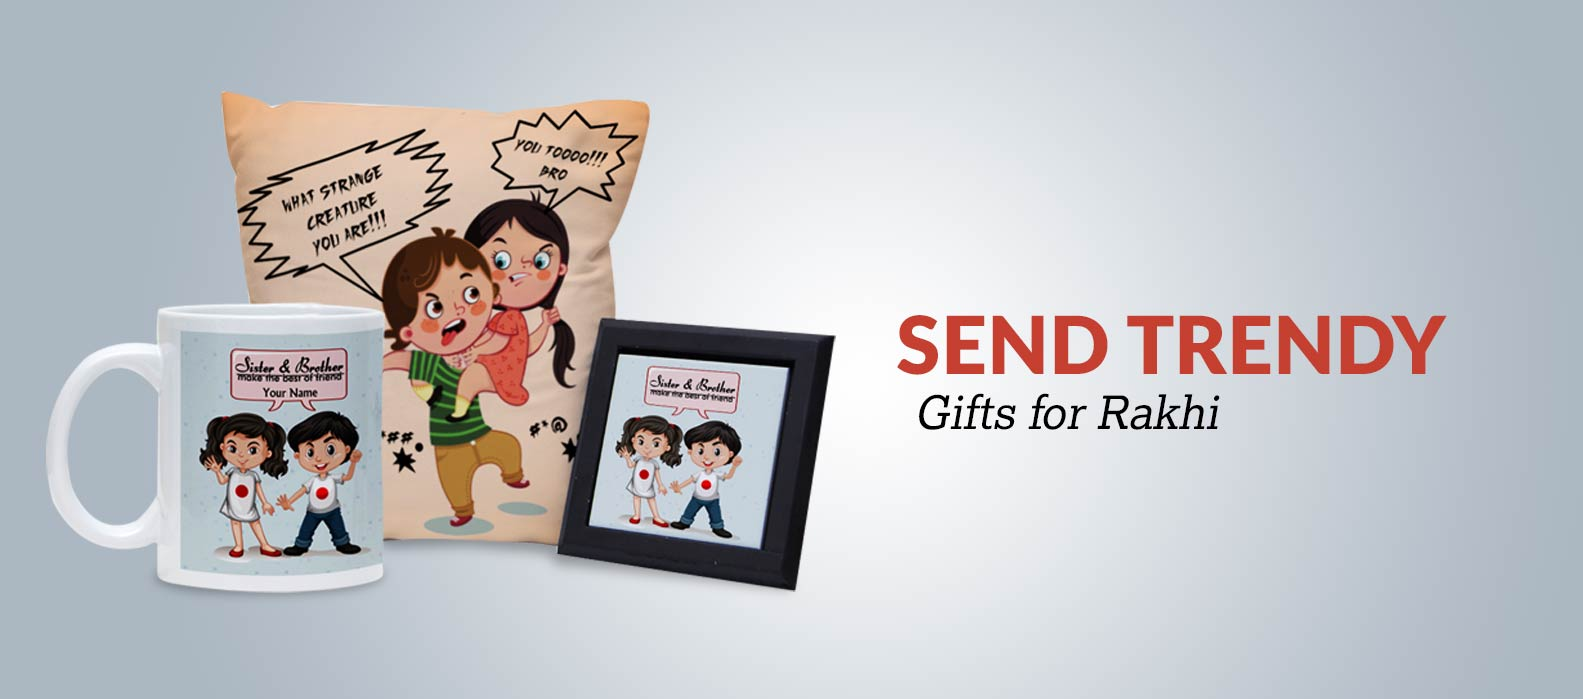 Send Trendy Gifts for Rakhi